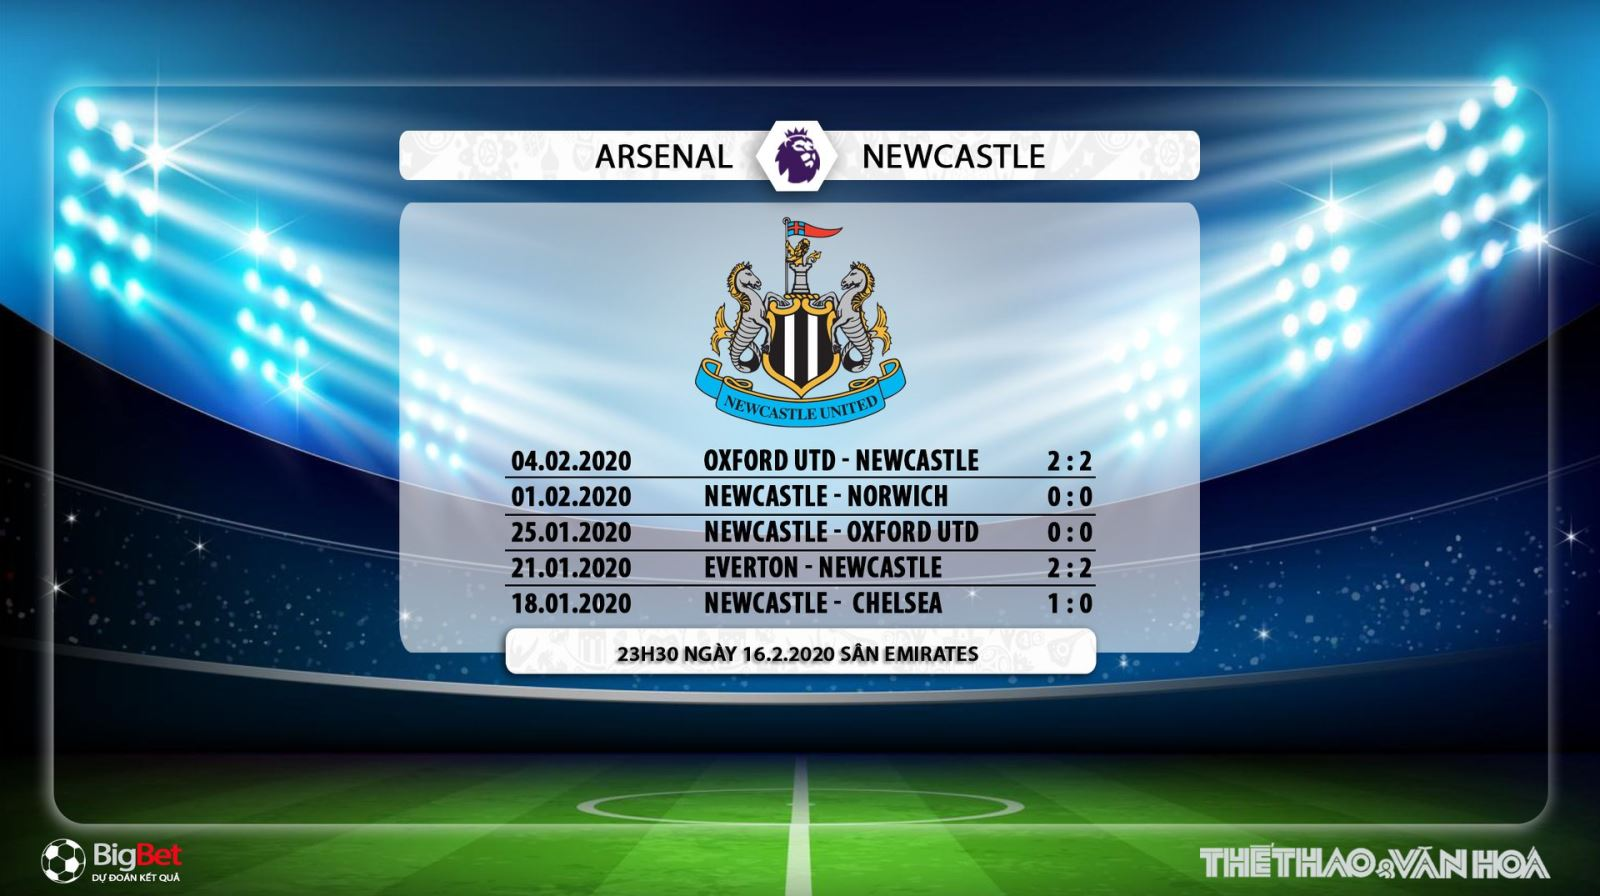 Soi kèo Arsenal vs Newcastle, Arsenal, Newcastle, trực tiếp Arsenal vs Newcastle, nhận định Arsenal vs Newcastle, bong da, bóng đá, K+, K+PM